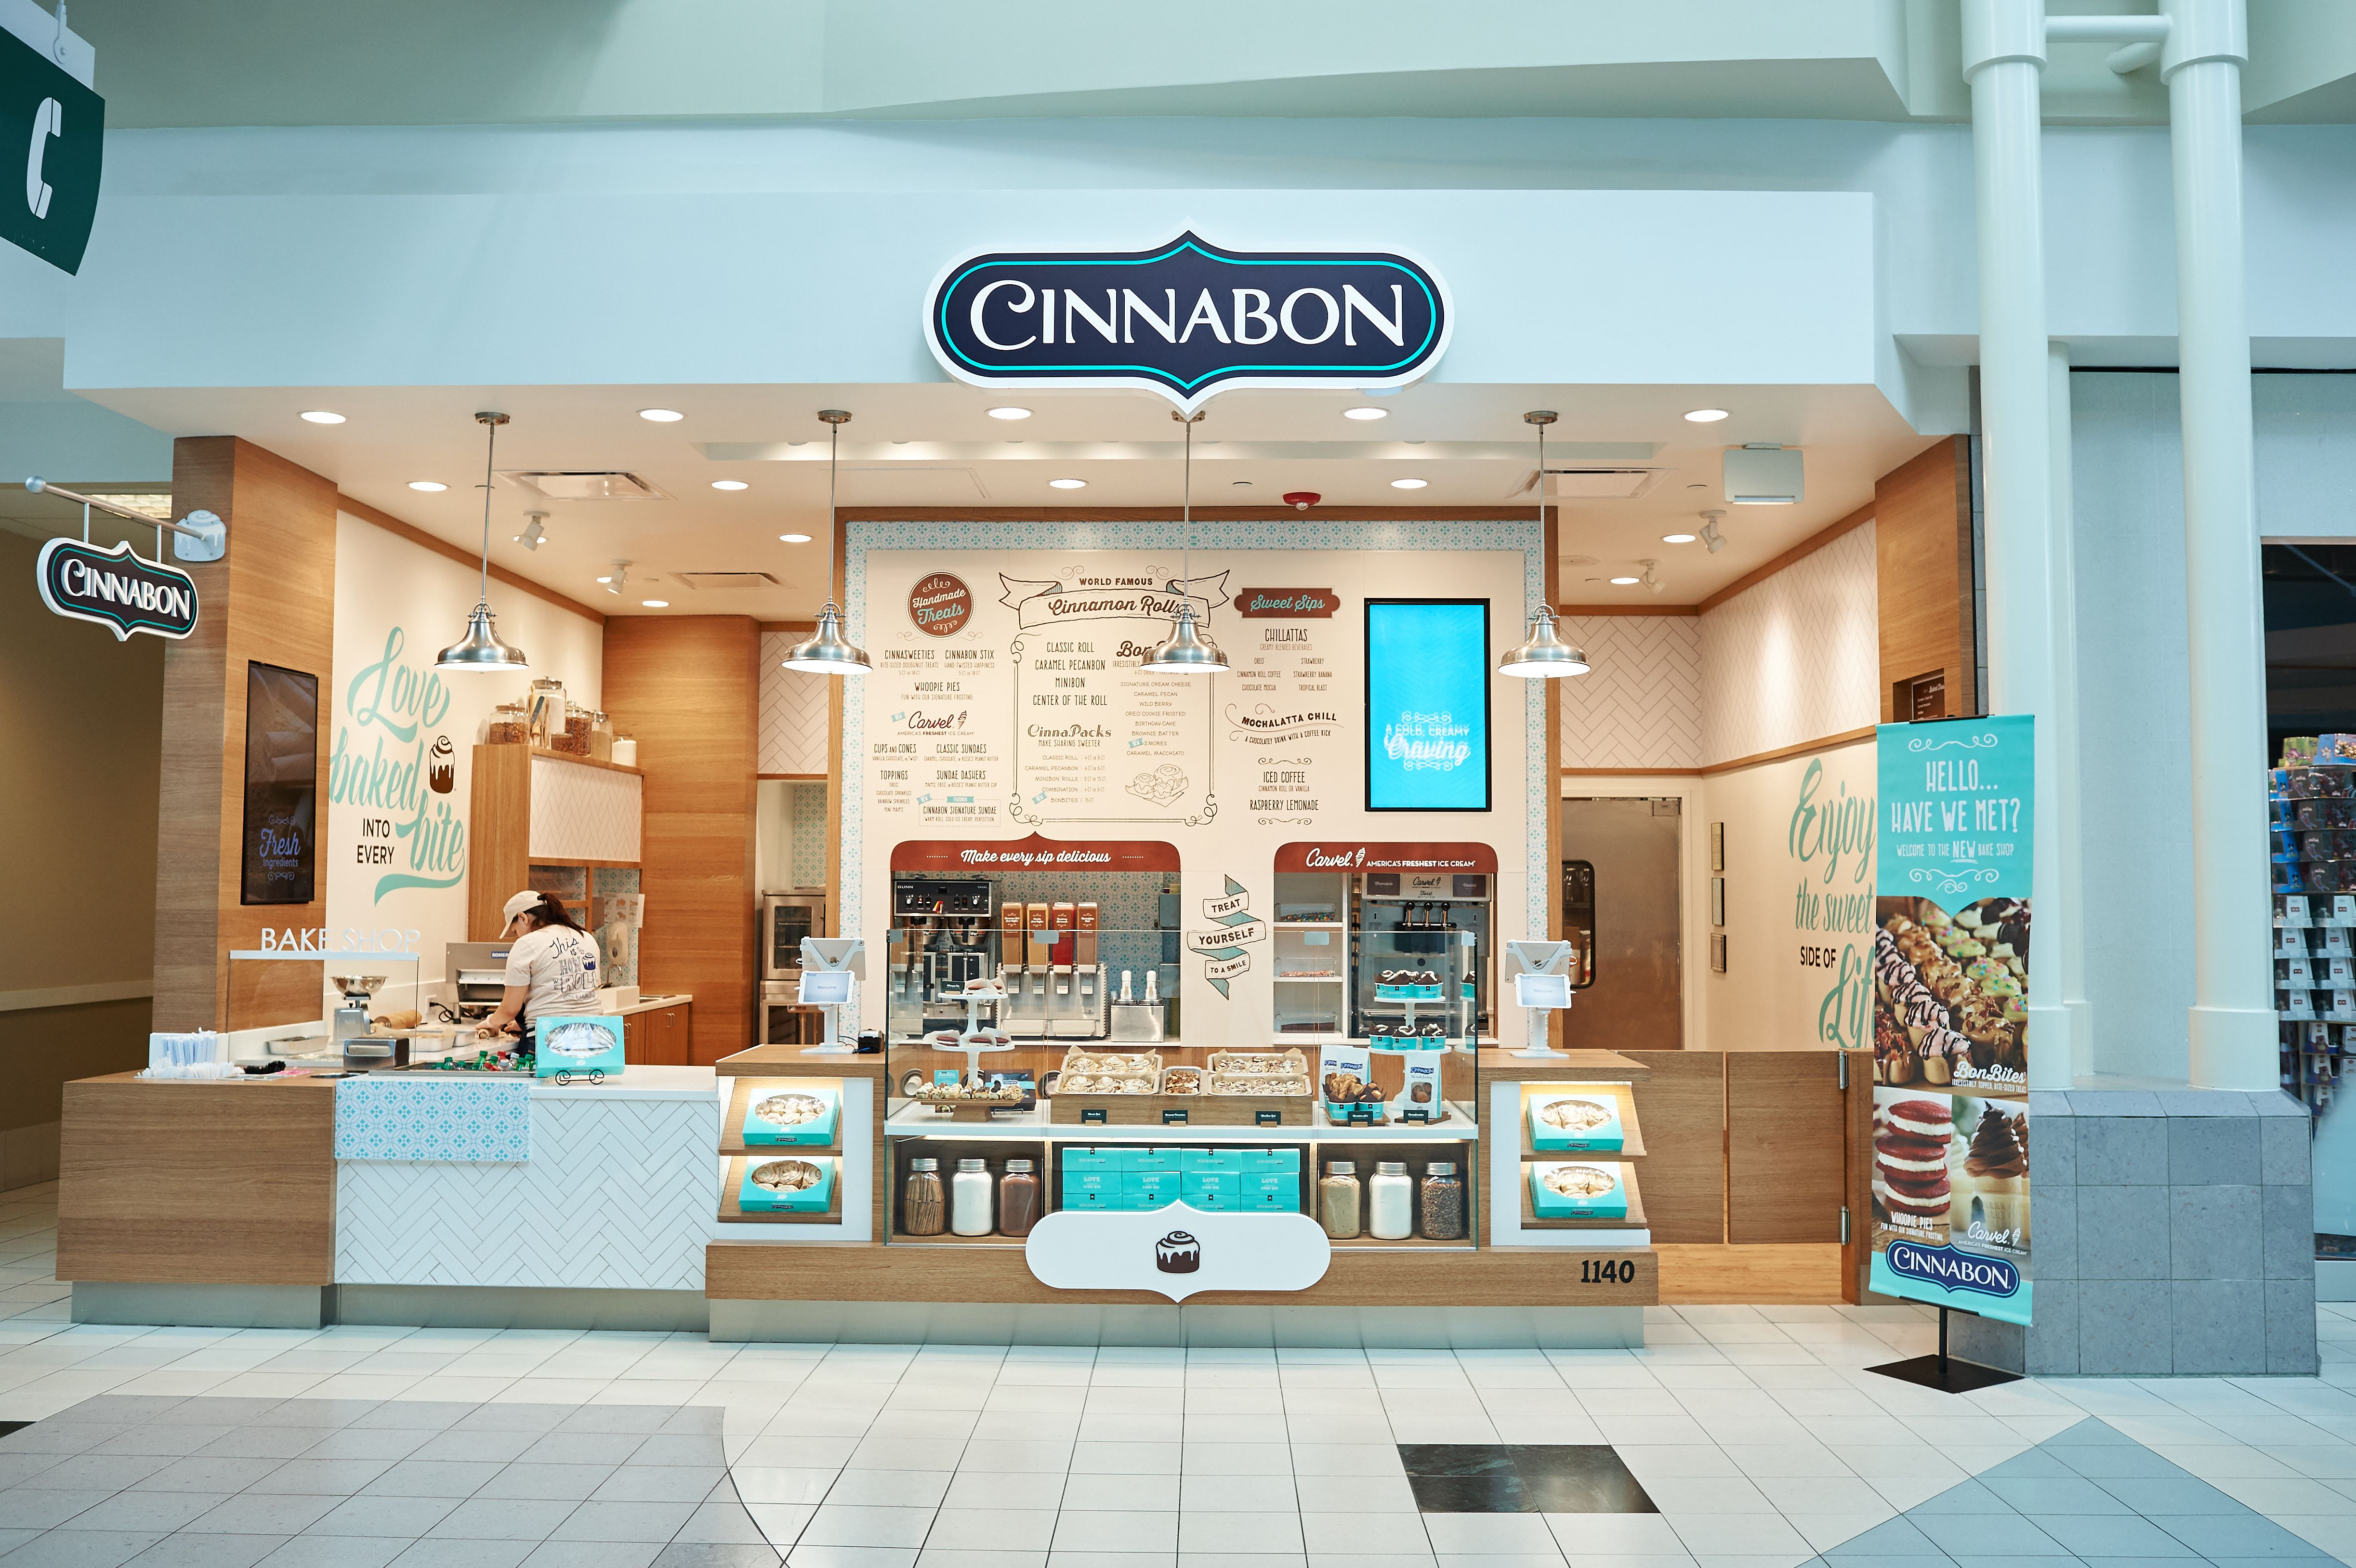 Know Before Eating at Cinnabon